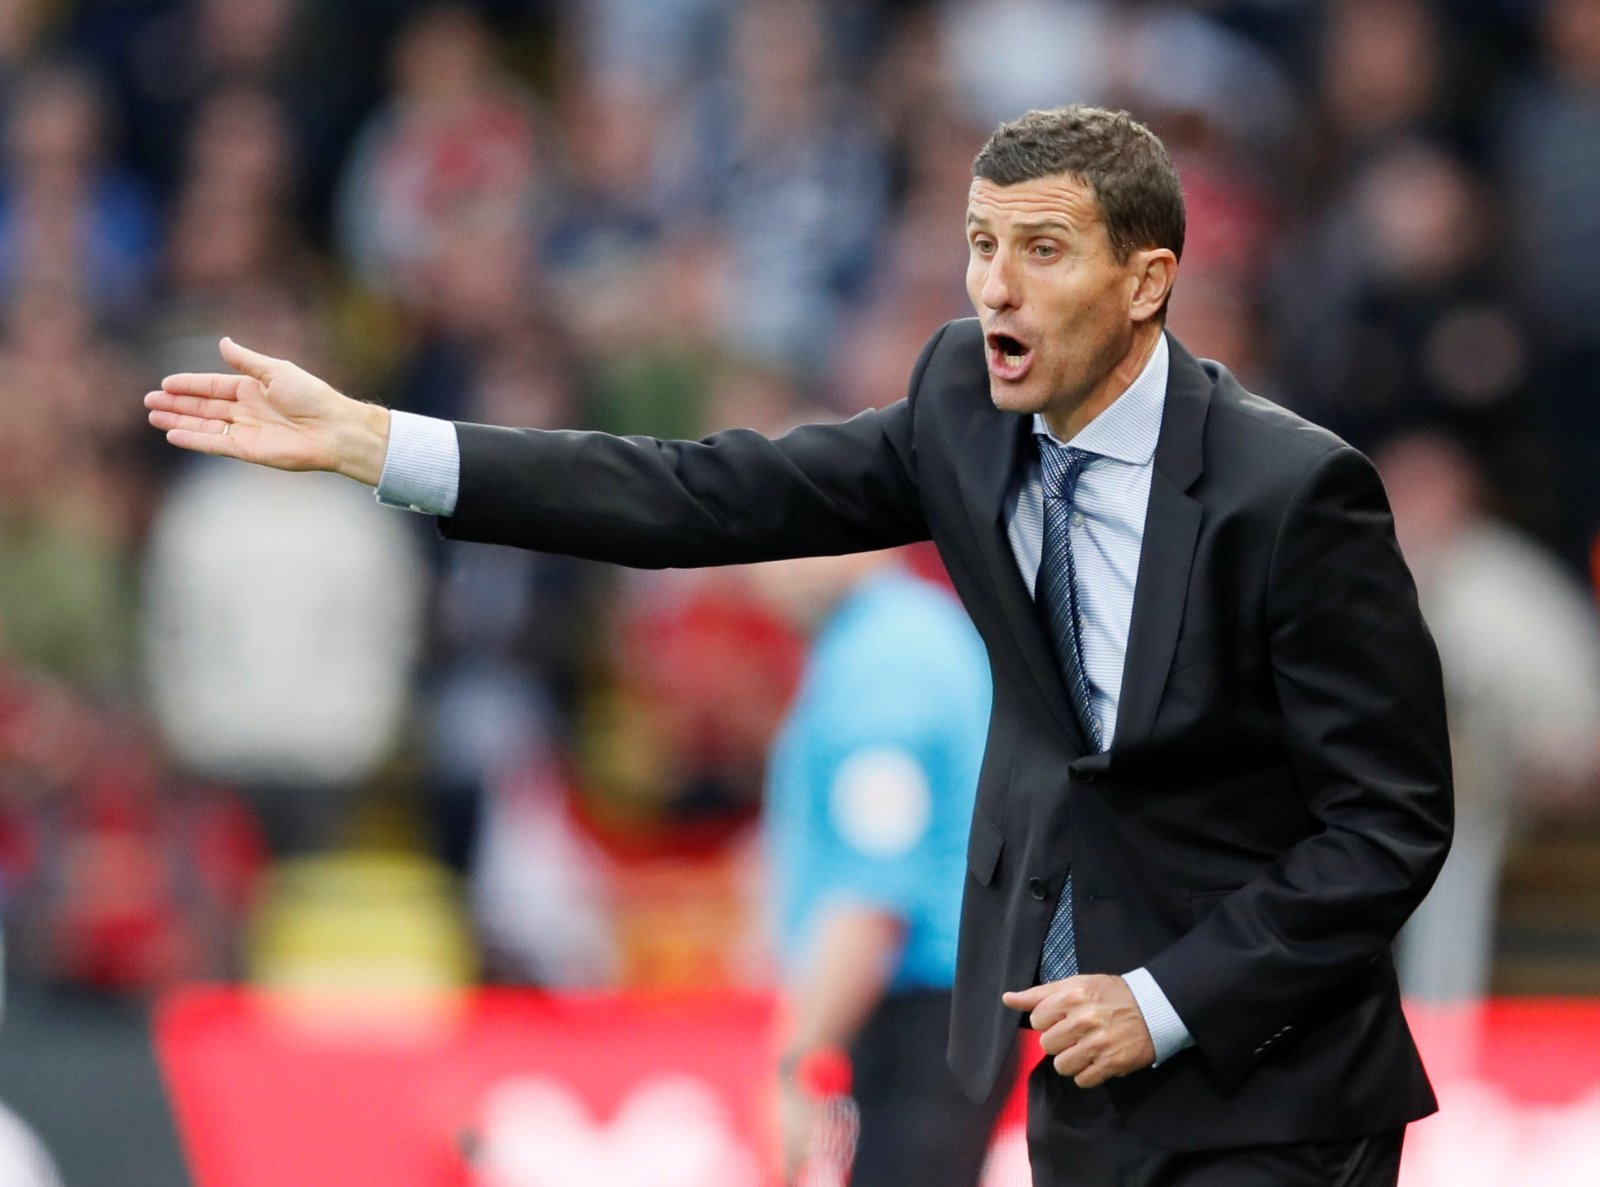 Watford: Hornets considering future of Javi Gracia after miserable Premier League start